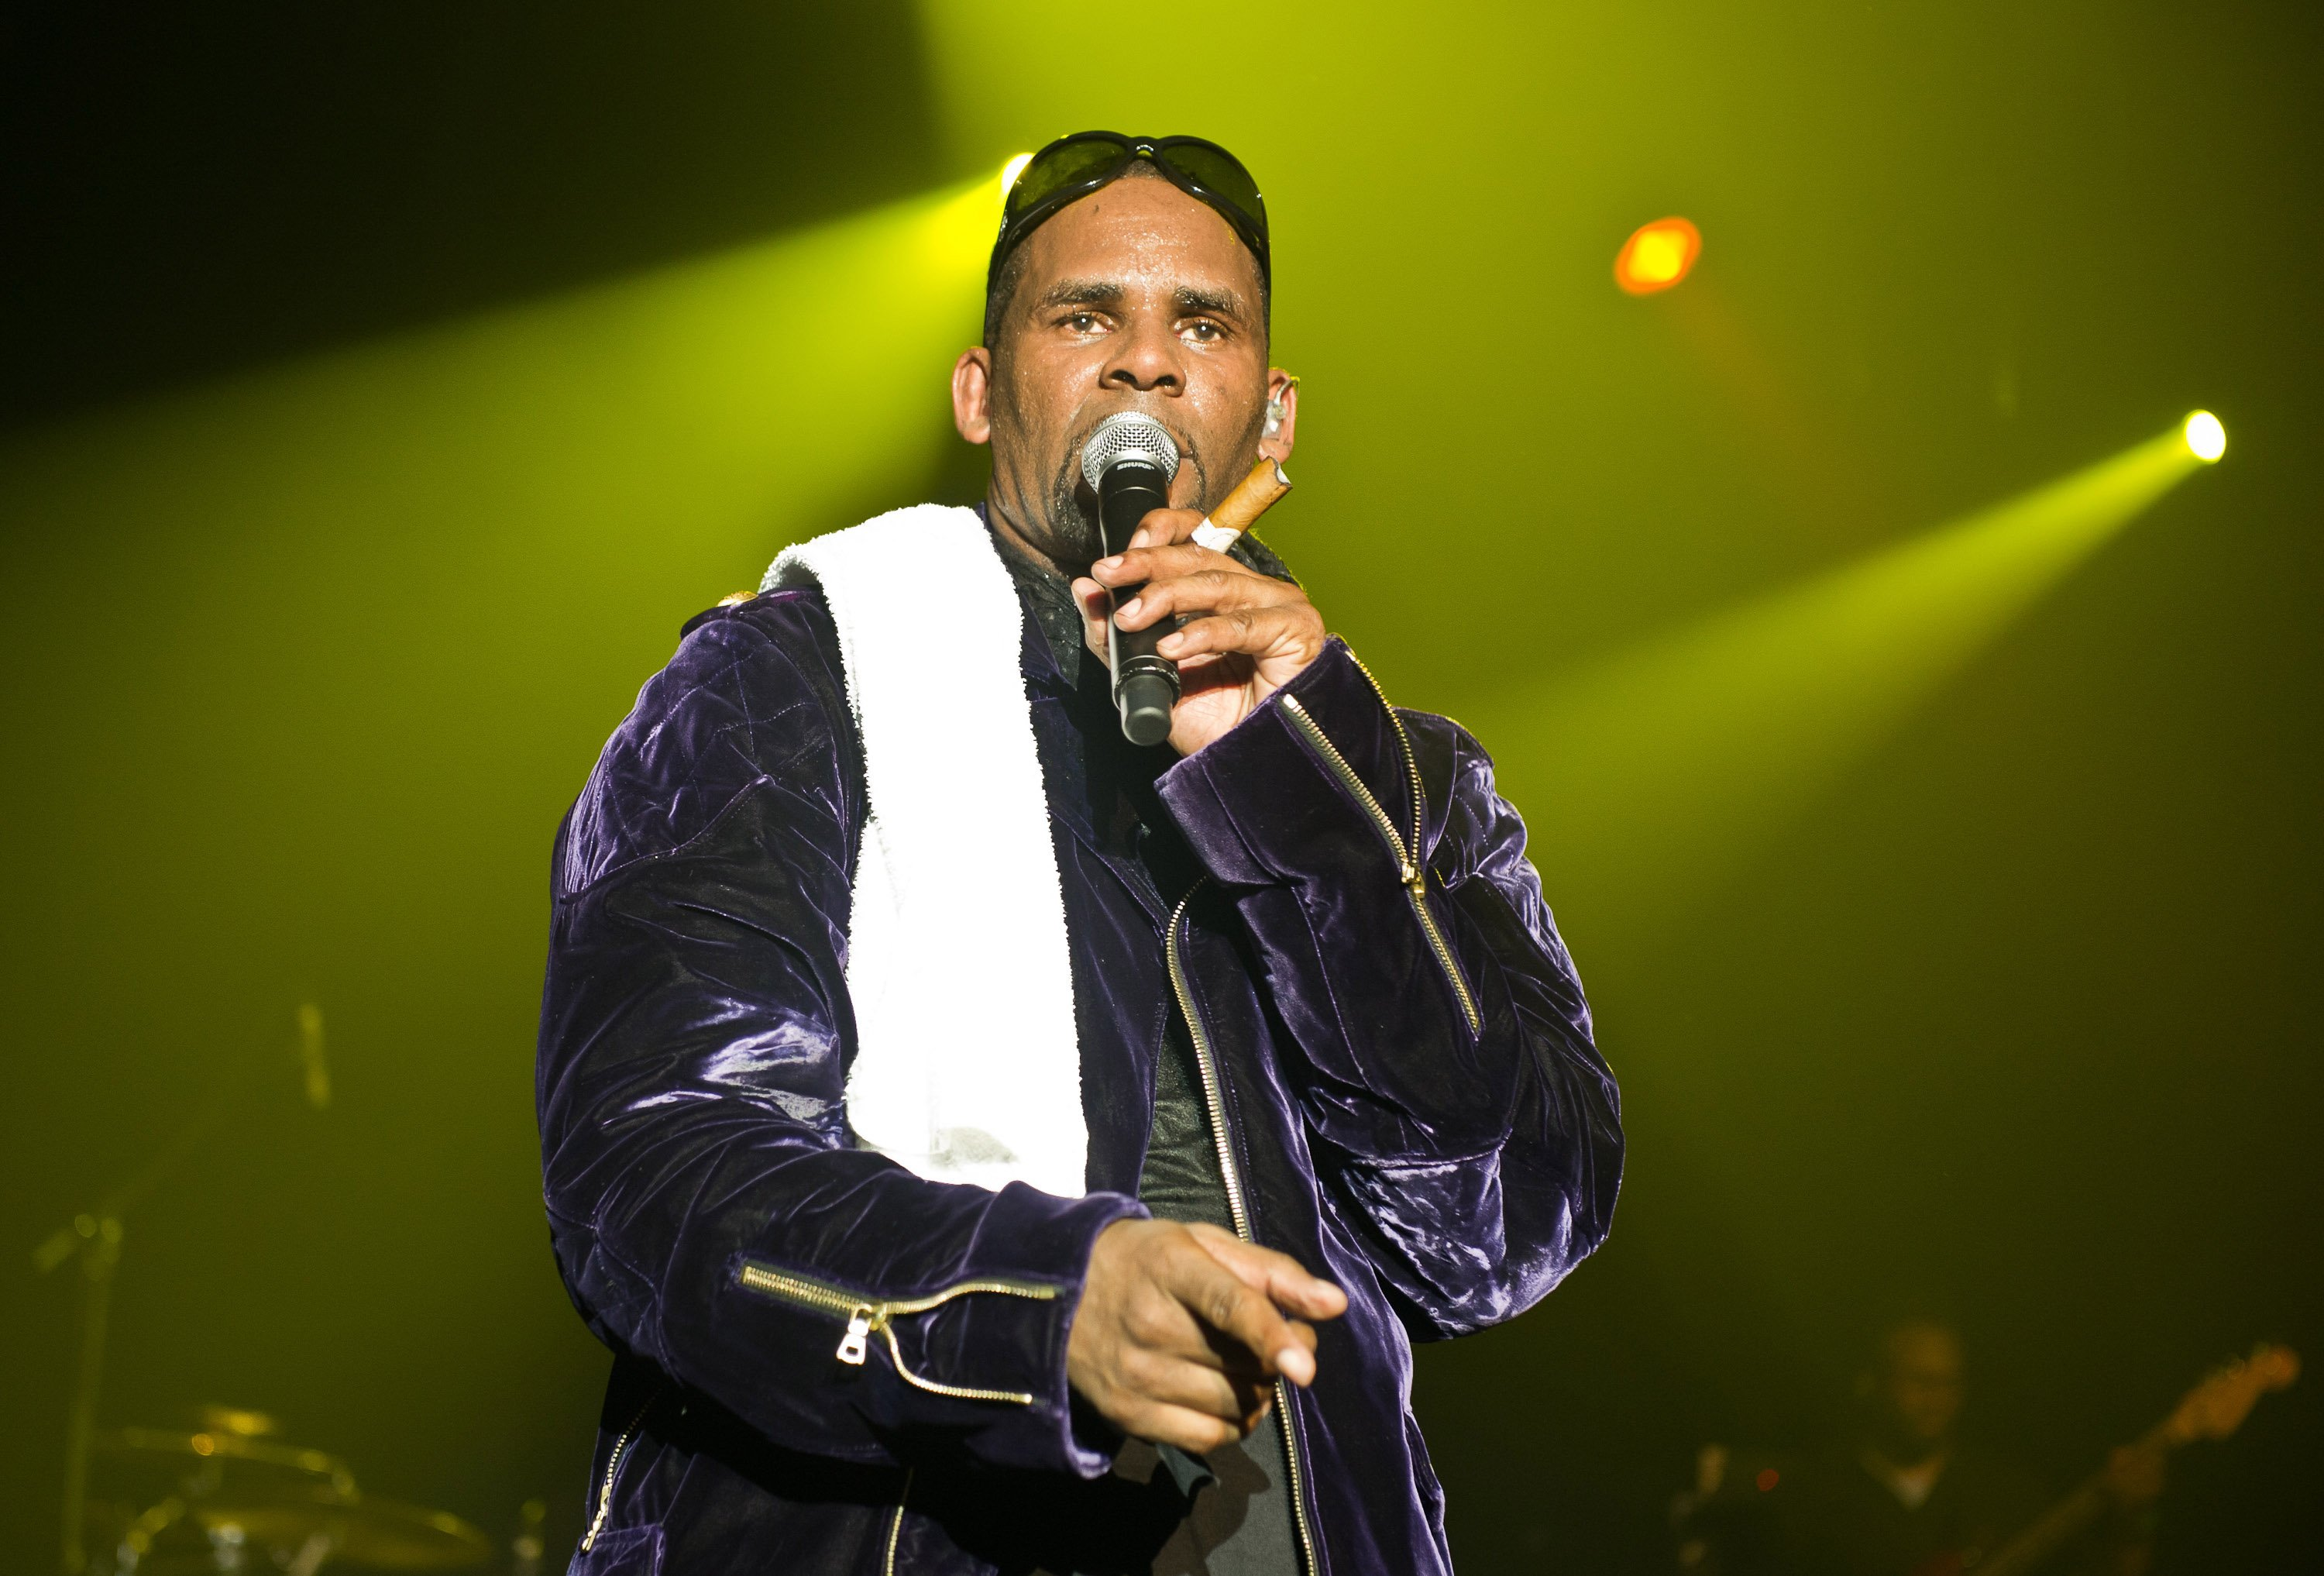 R. Kelly: Thousands sign petition to stop concerts in Germany